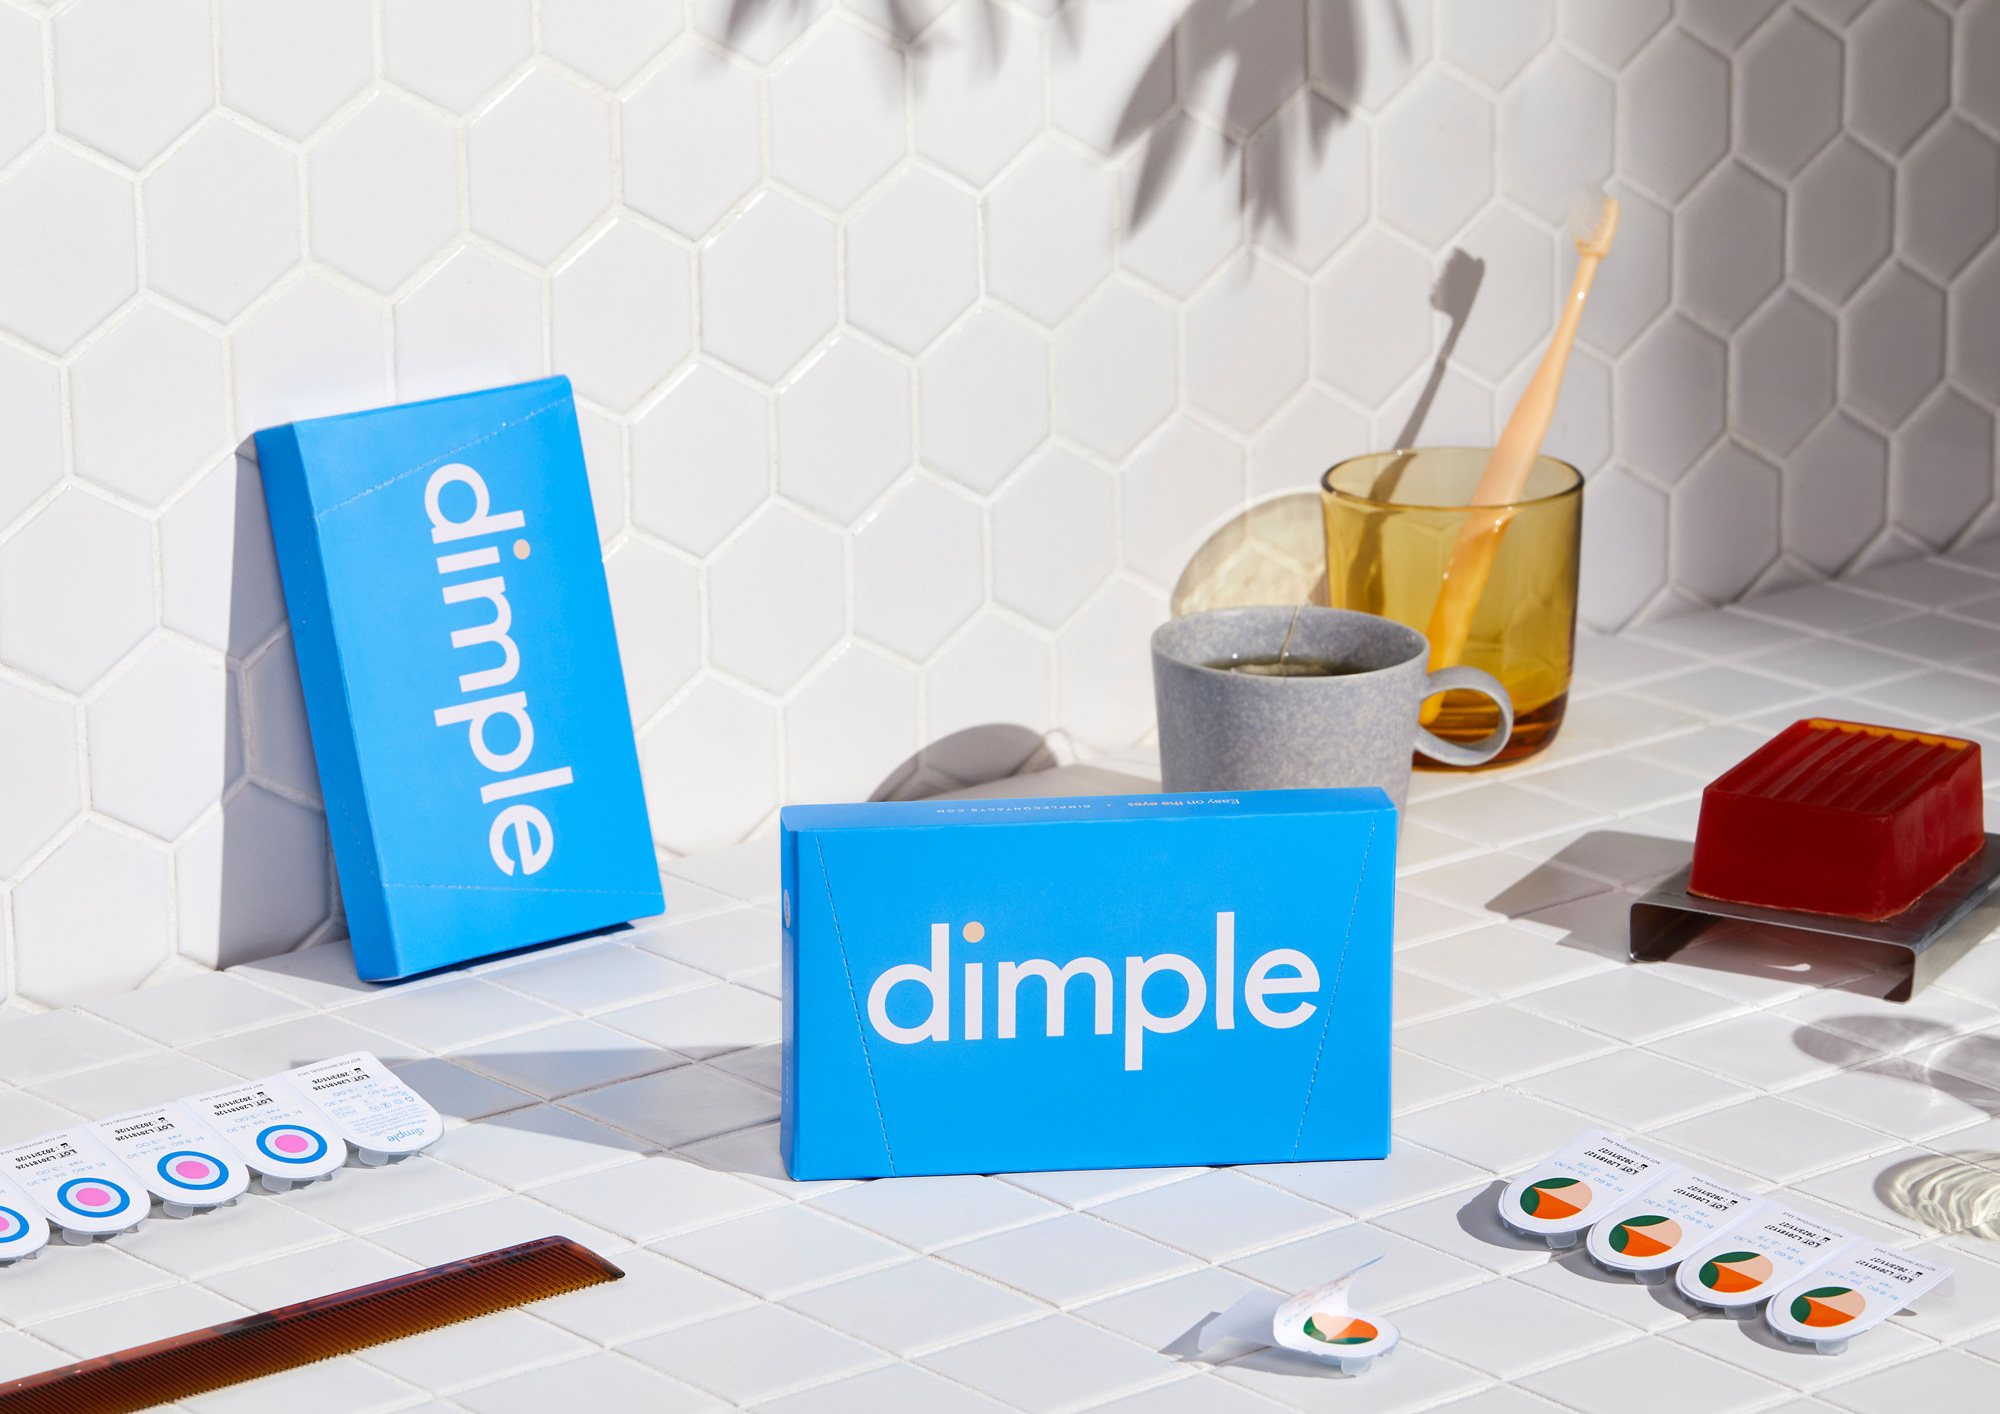 New Logo, Identity, and Packaging for Dimple by Universal Favorite